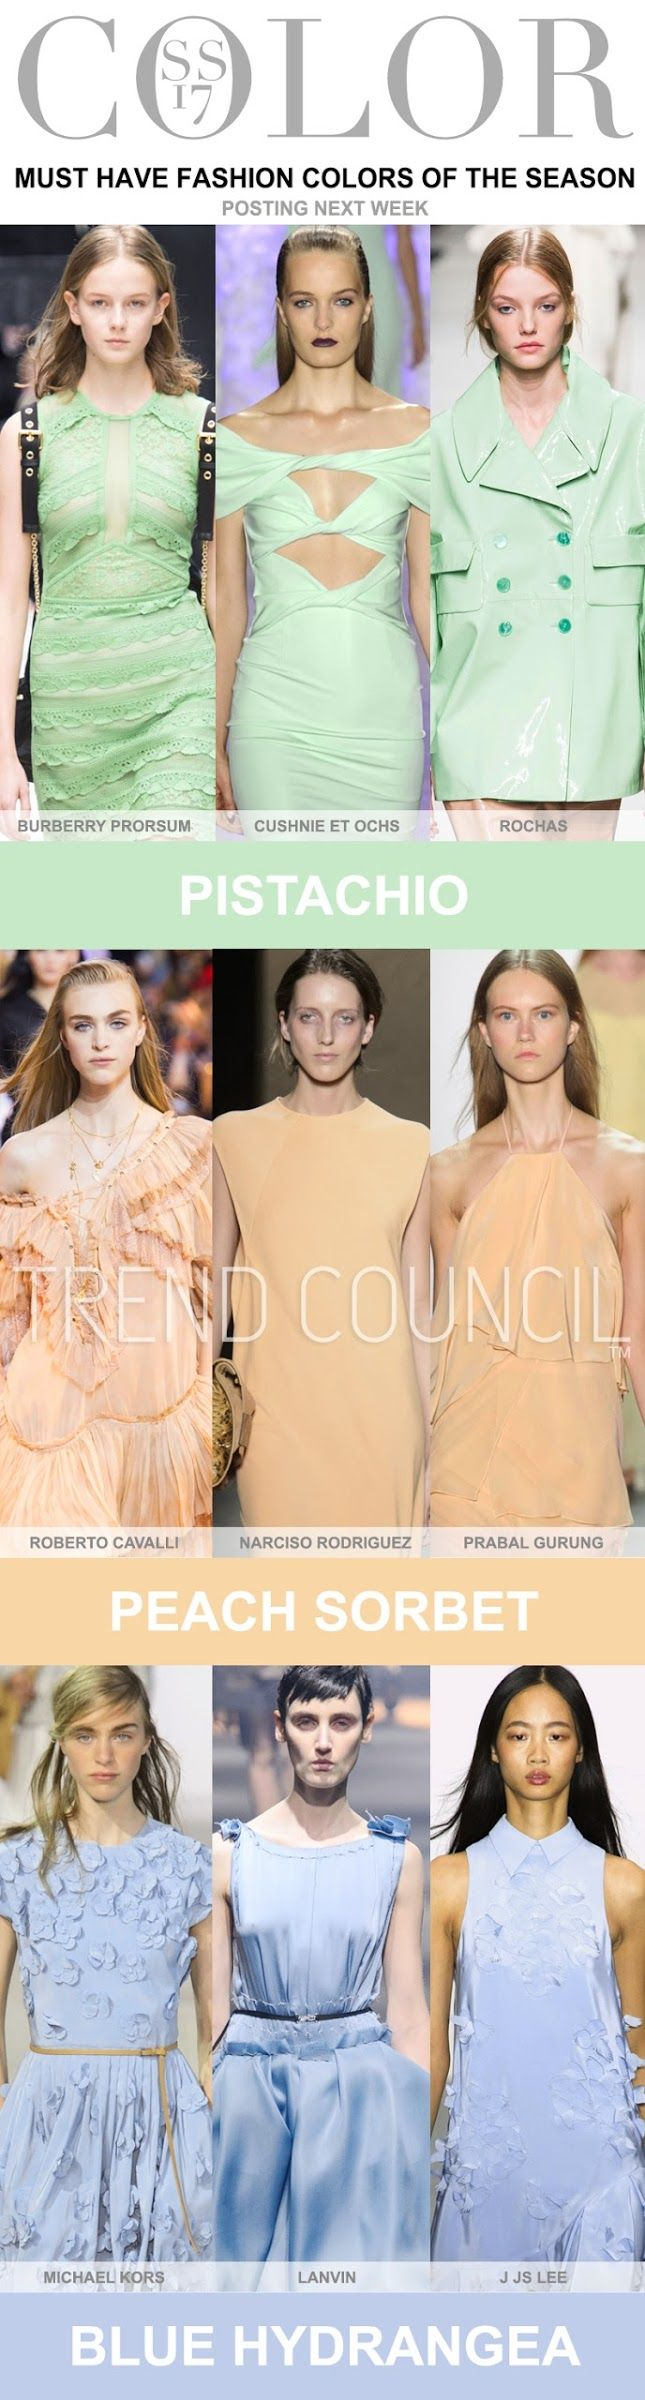 Colour trends 2017 ~ minikem forecast  TREND COUNCIL - WOMEN'S COLOR . S/S 2017 | FASHION VIGNETTE from bloglovin